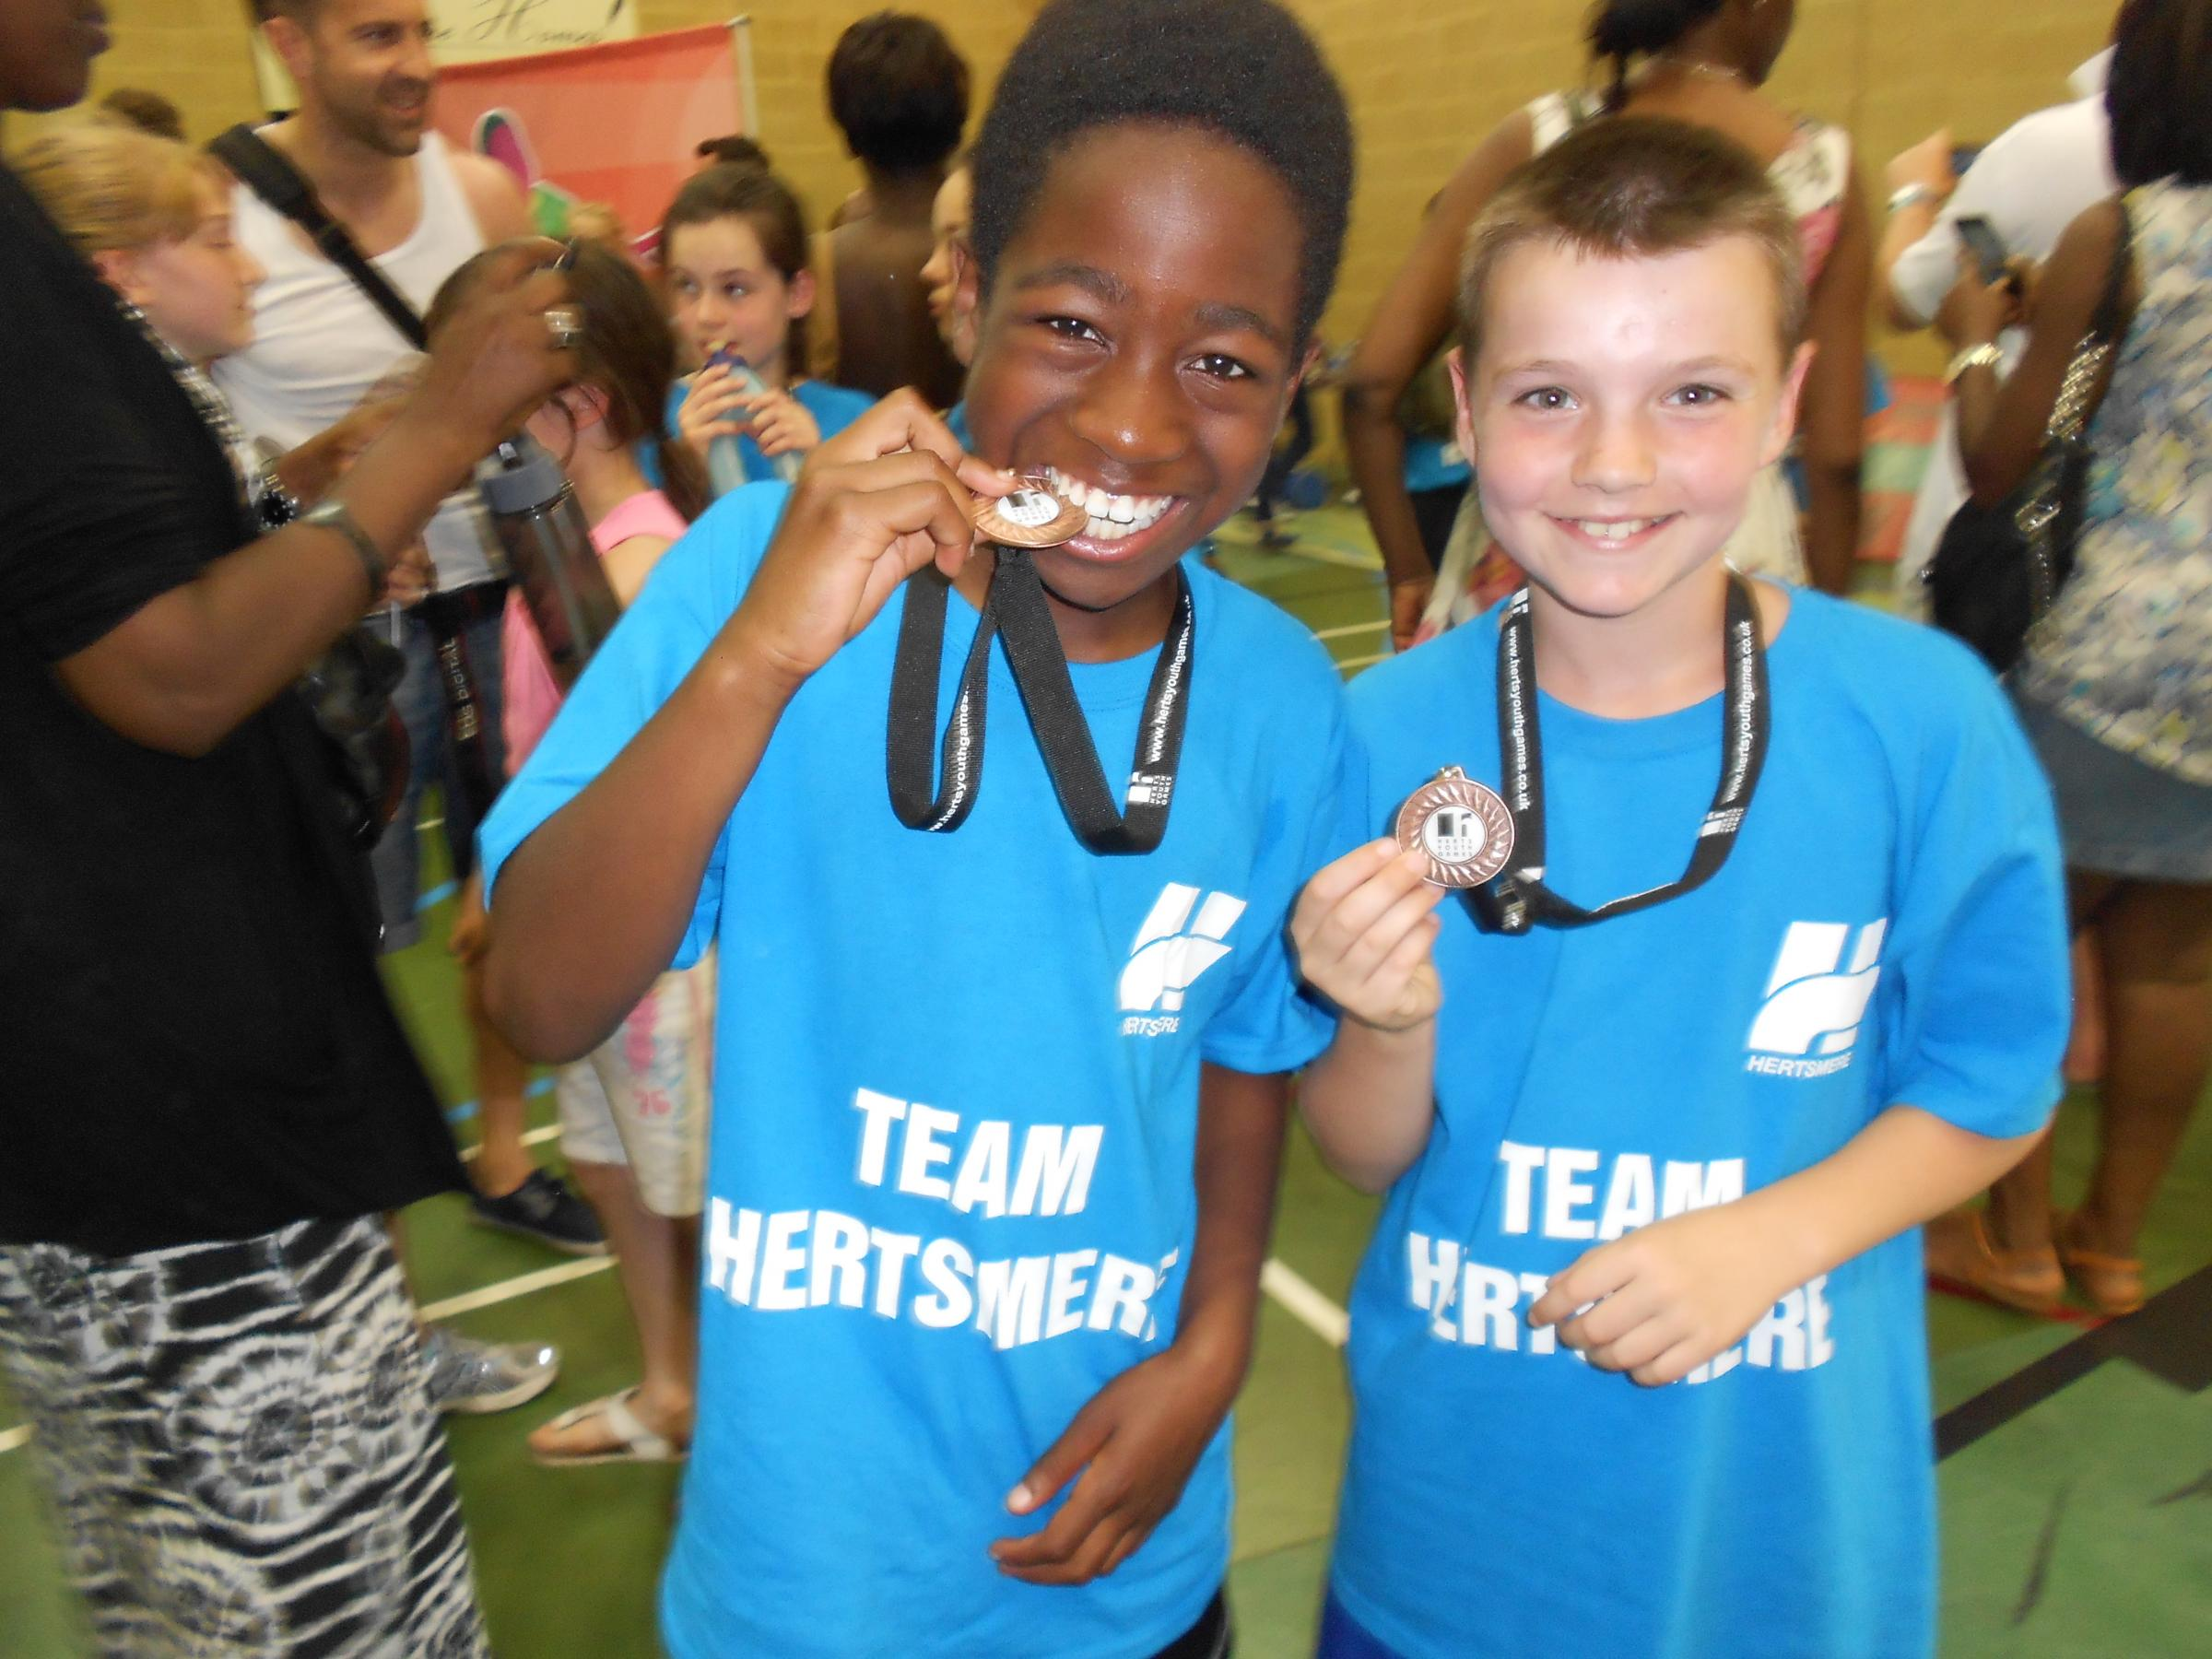 Last year's winners at the Herts Youth Games